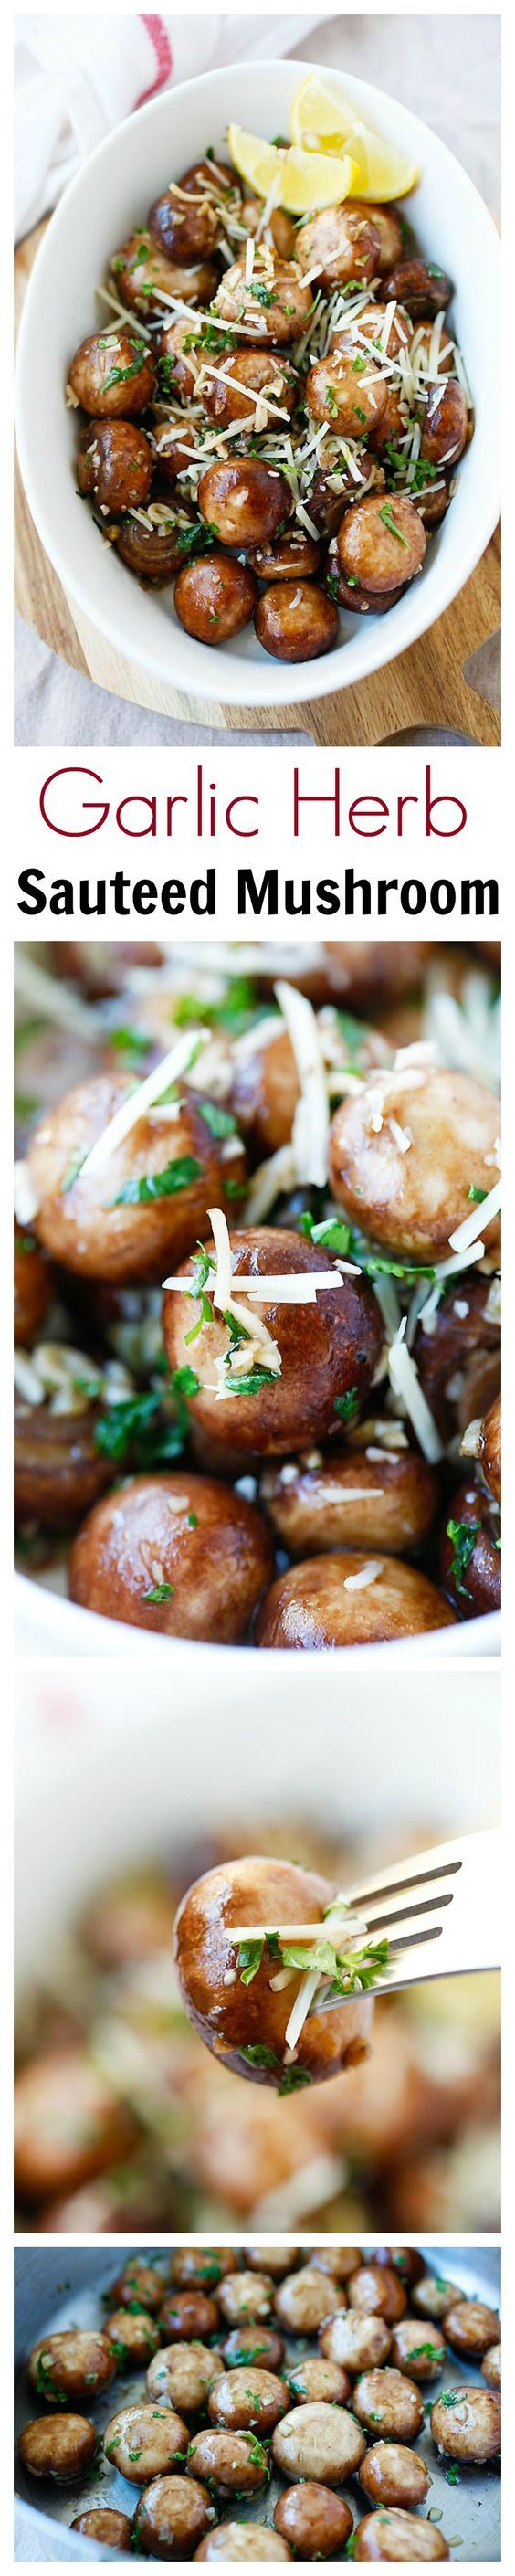 Garlic Herb Sauteed Mushrooms – best & easiest mushroom recipe that takes only 10 mins. Saute mushrooms with olive oil, garlic, parsley, and top with Parmesan cheese | rasamalaysia.com